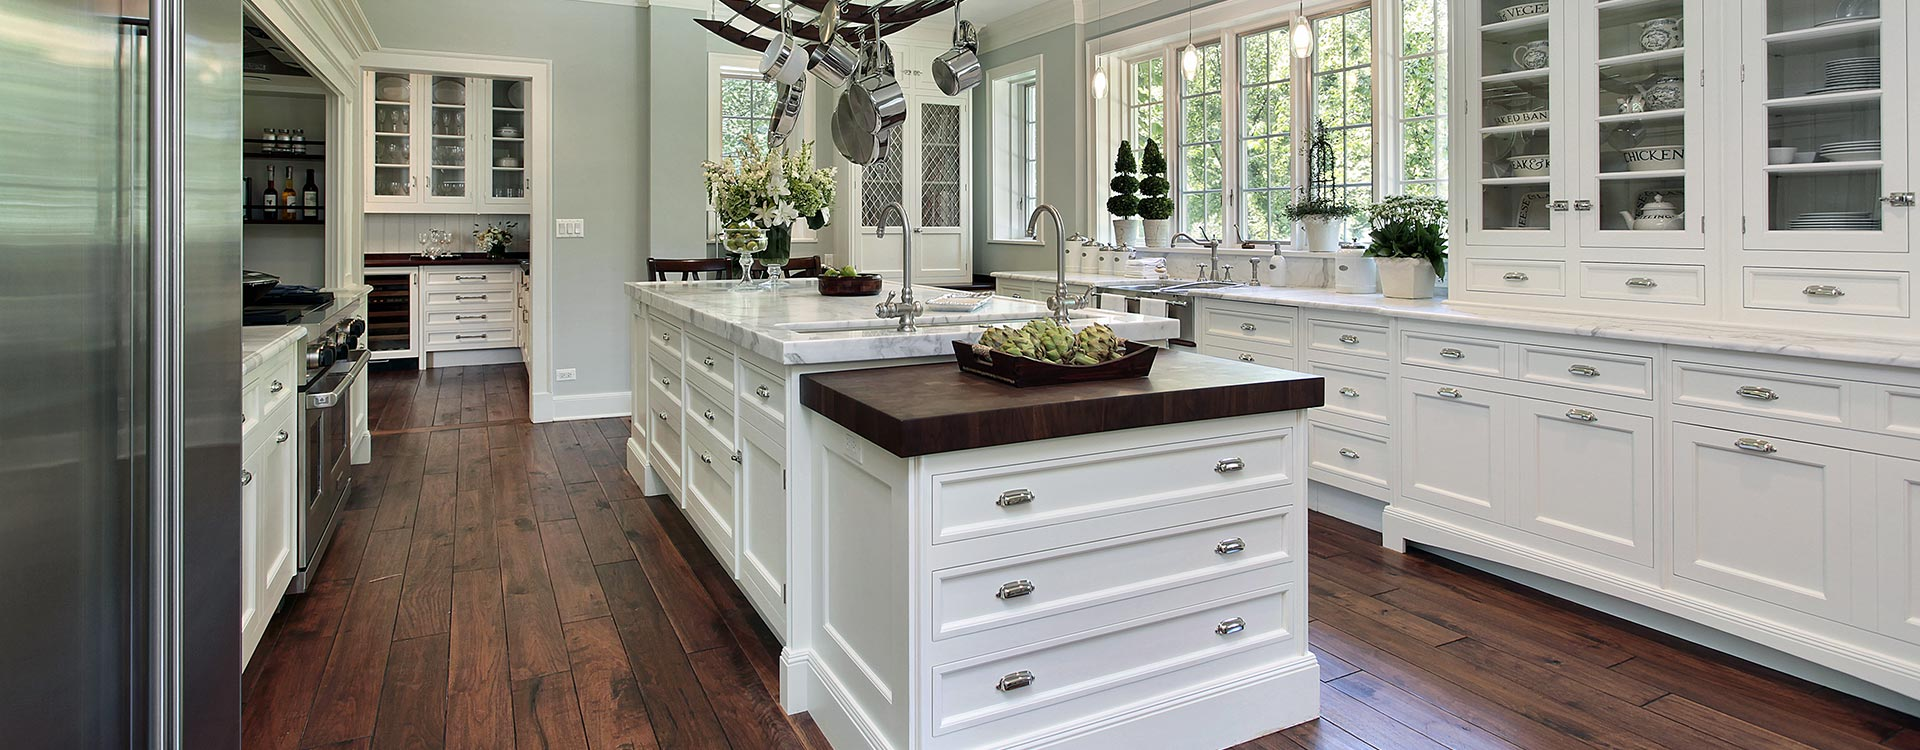 Authentic Custom Cabinetry